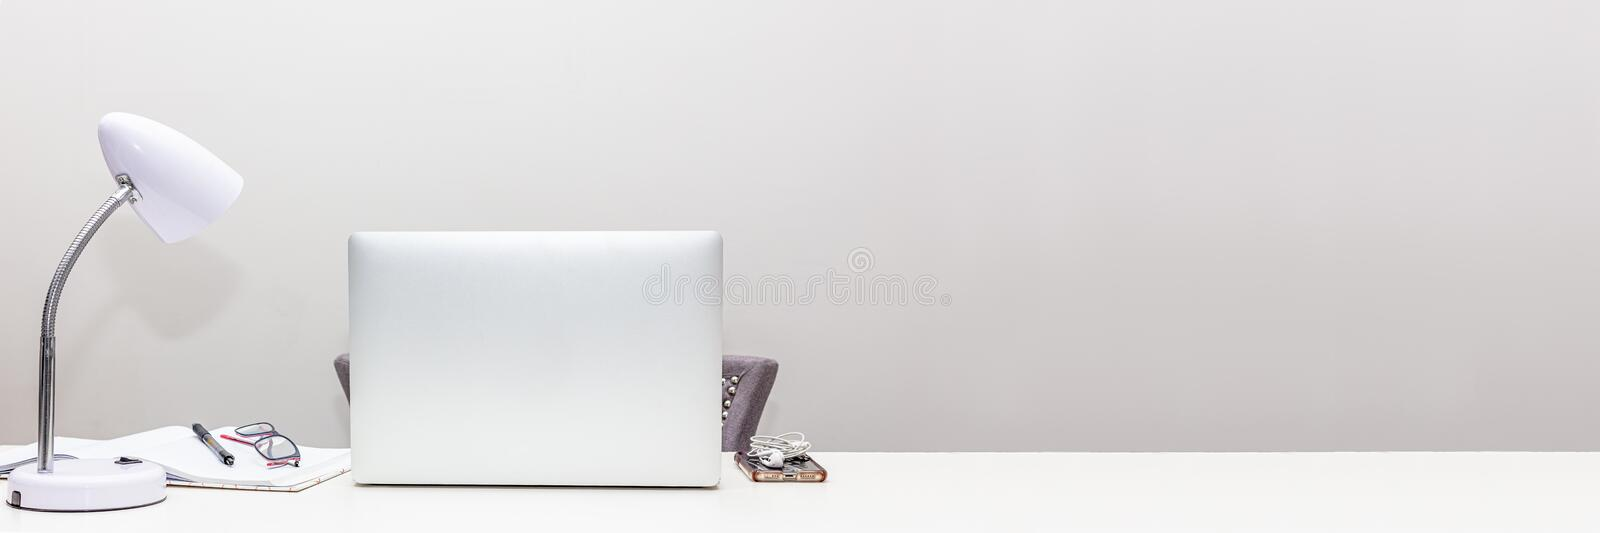 Work From Home Office Space Web Banner stock images